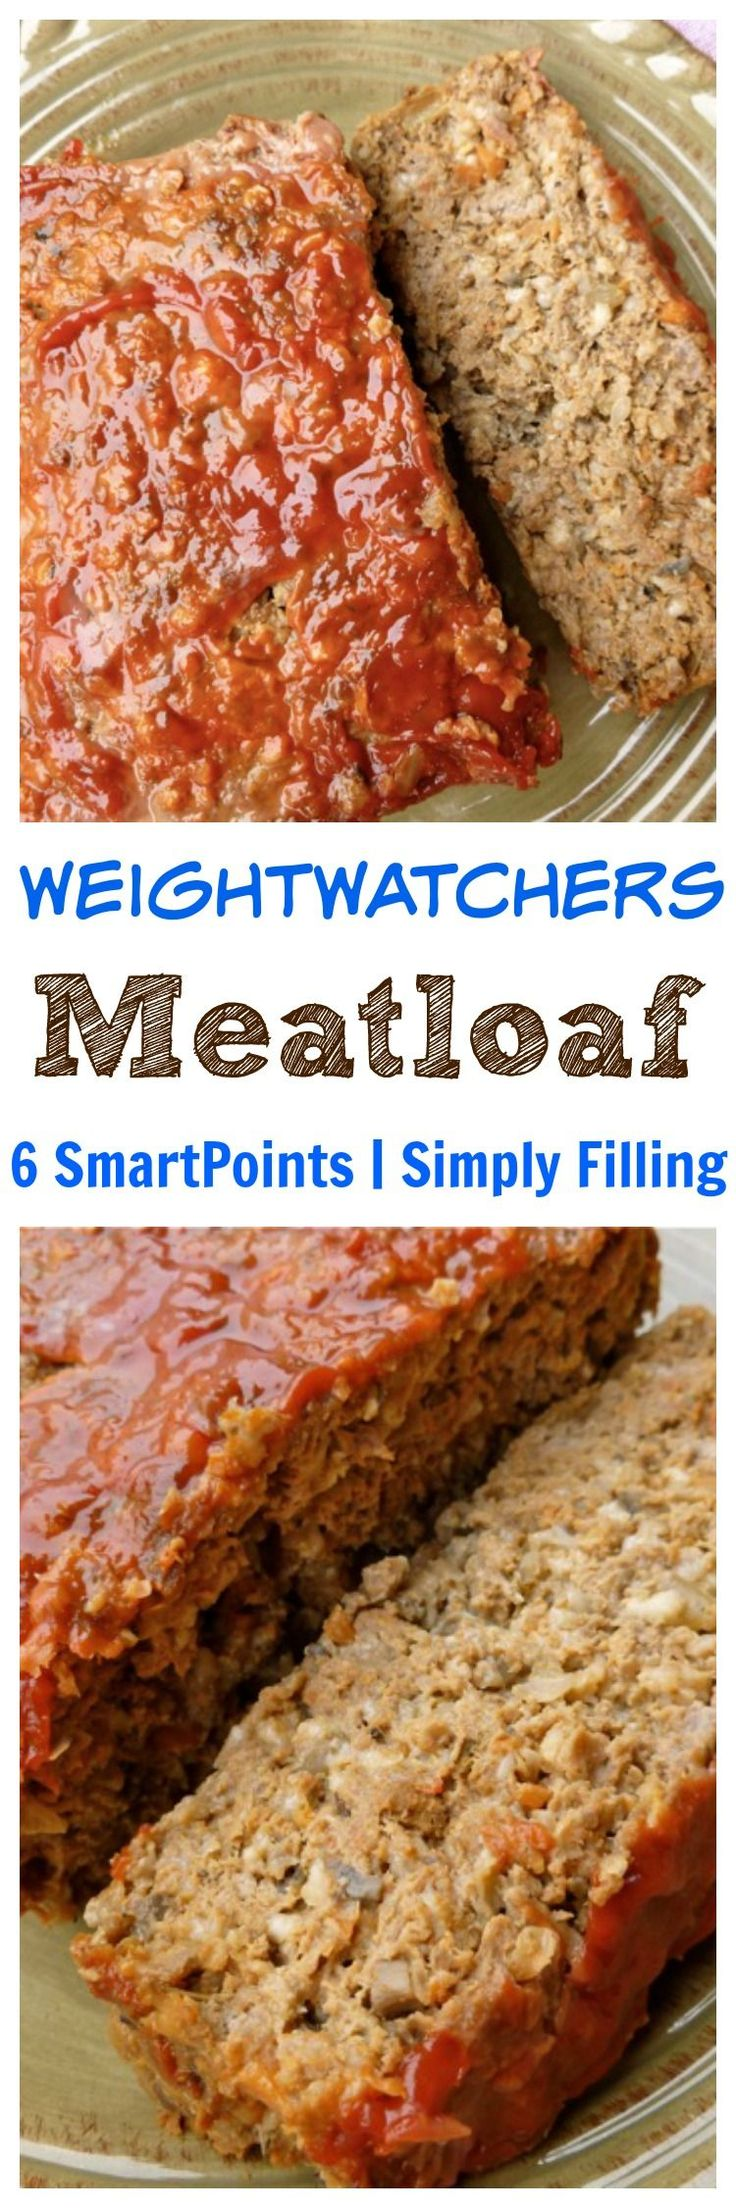 Weight Watchers Meat Loaf is a family favorite with 6 SmartPoints and works with Simply Filling Technique. Lots of yummy variations too.